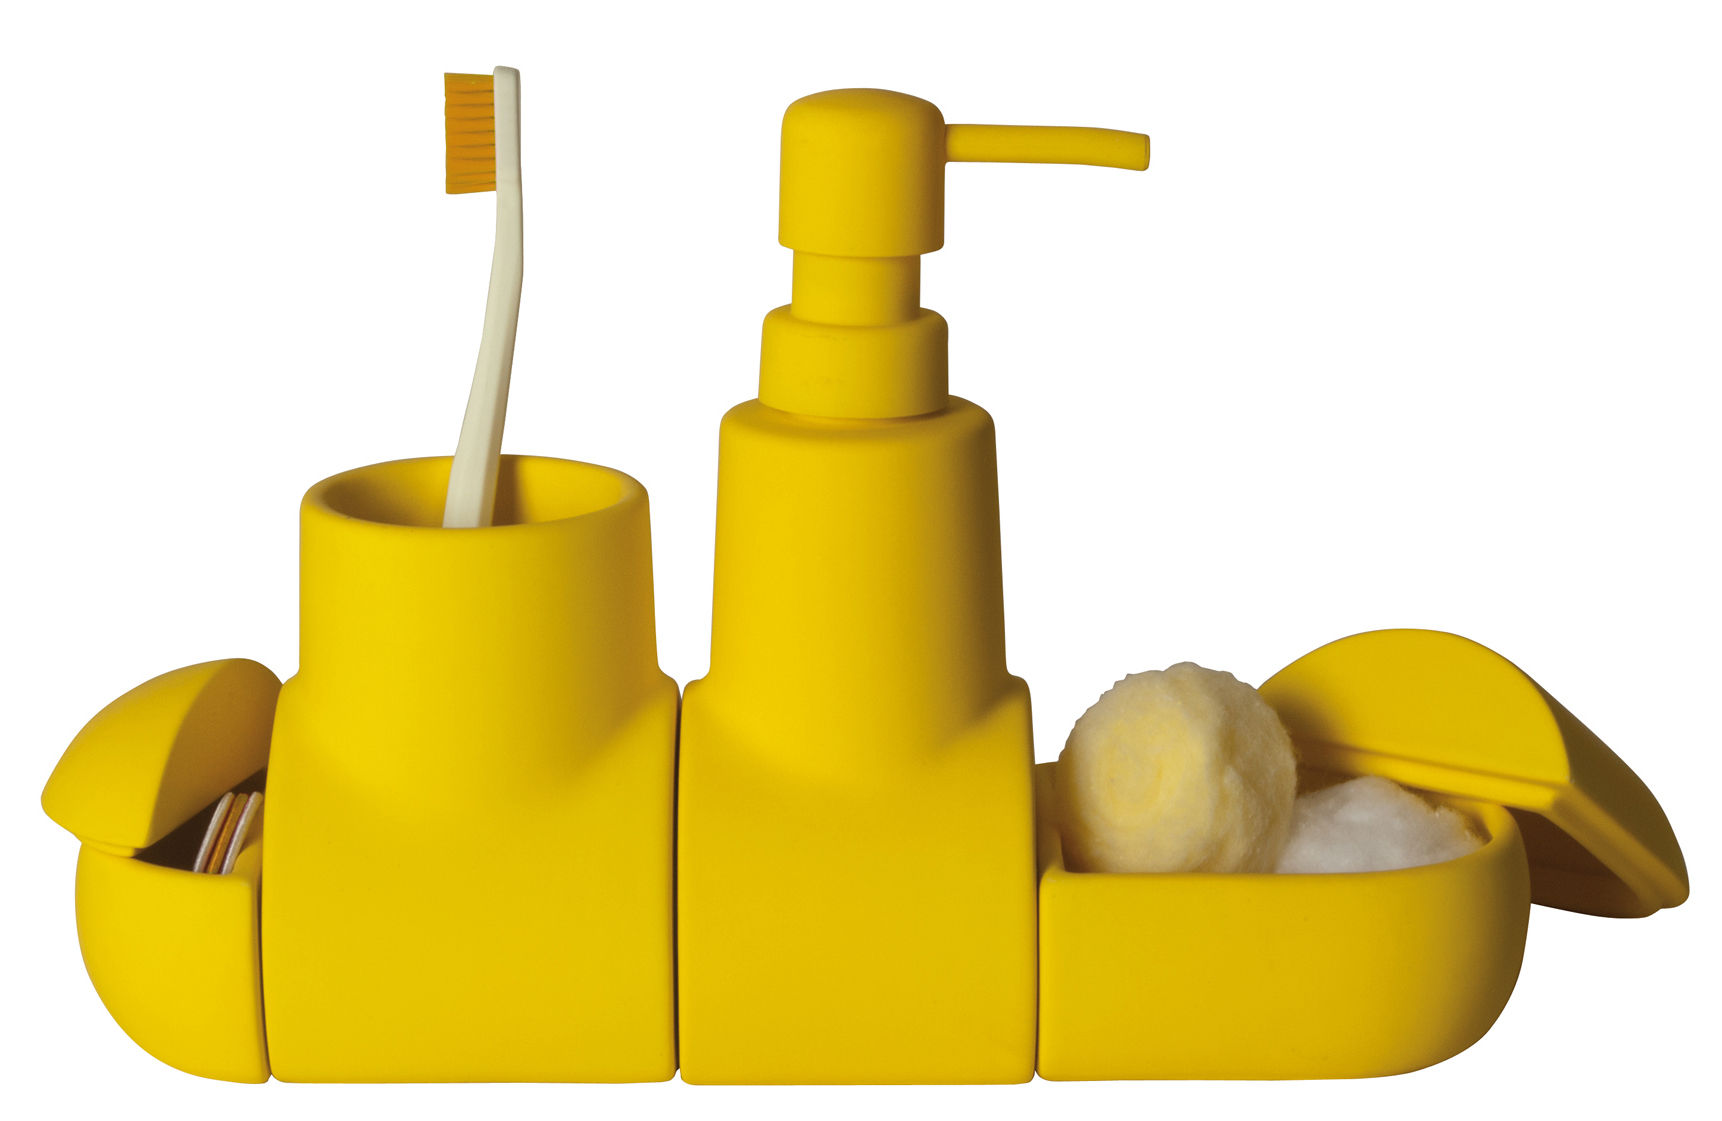 Accessories - Bathroom Accessories - Submarine Accessories set - For bathroom by Seletti - Yellow - China, Rubber